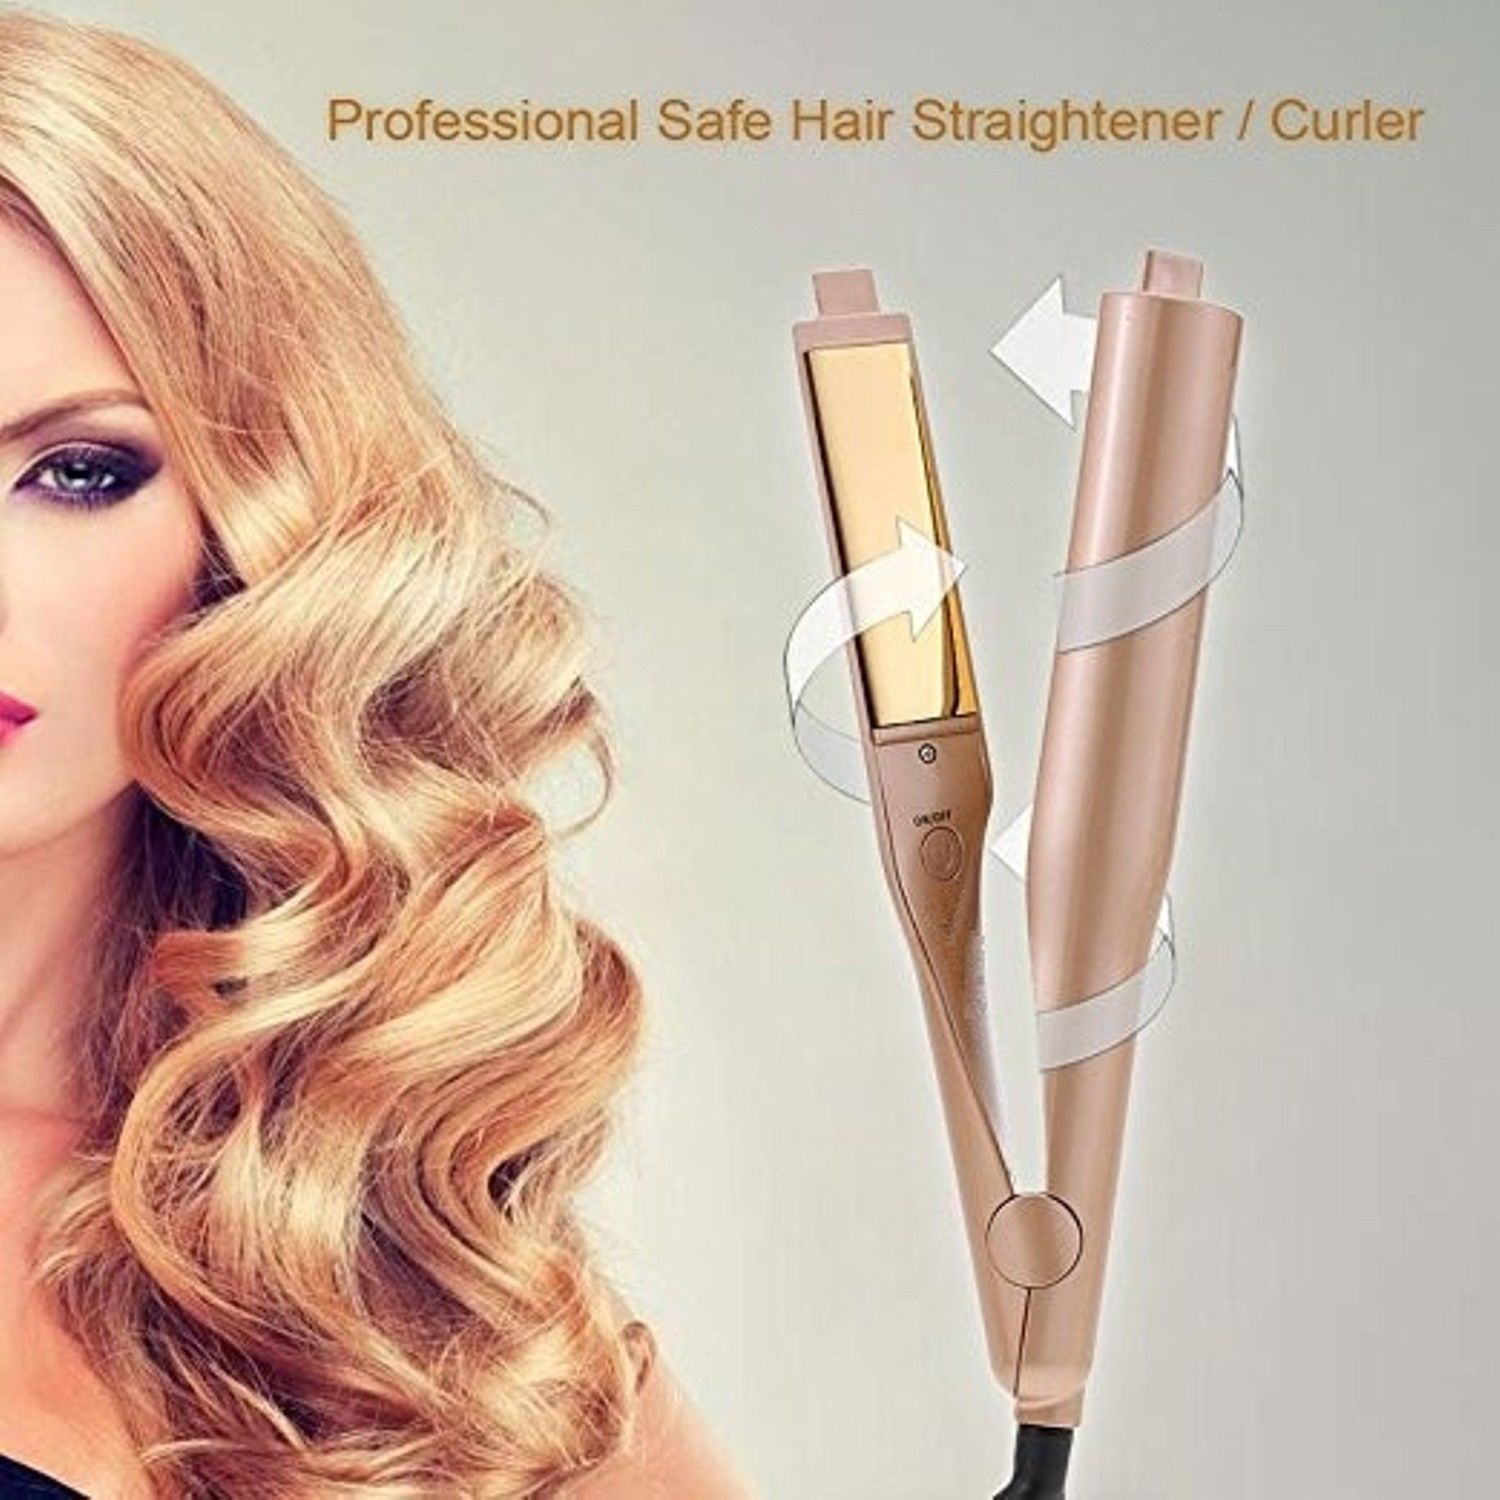 Professional 2in1 Straightener Irons Hair Curler Flat Iron Straightening Styling Tools Iron Curling Ceramic Wave iron professional vibrating titanium hair straightener digital display ceramic straightening irons flat iron hair styling tools new